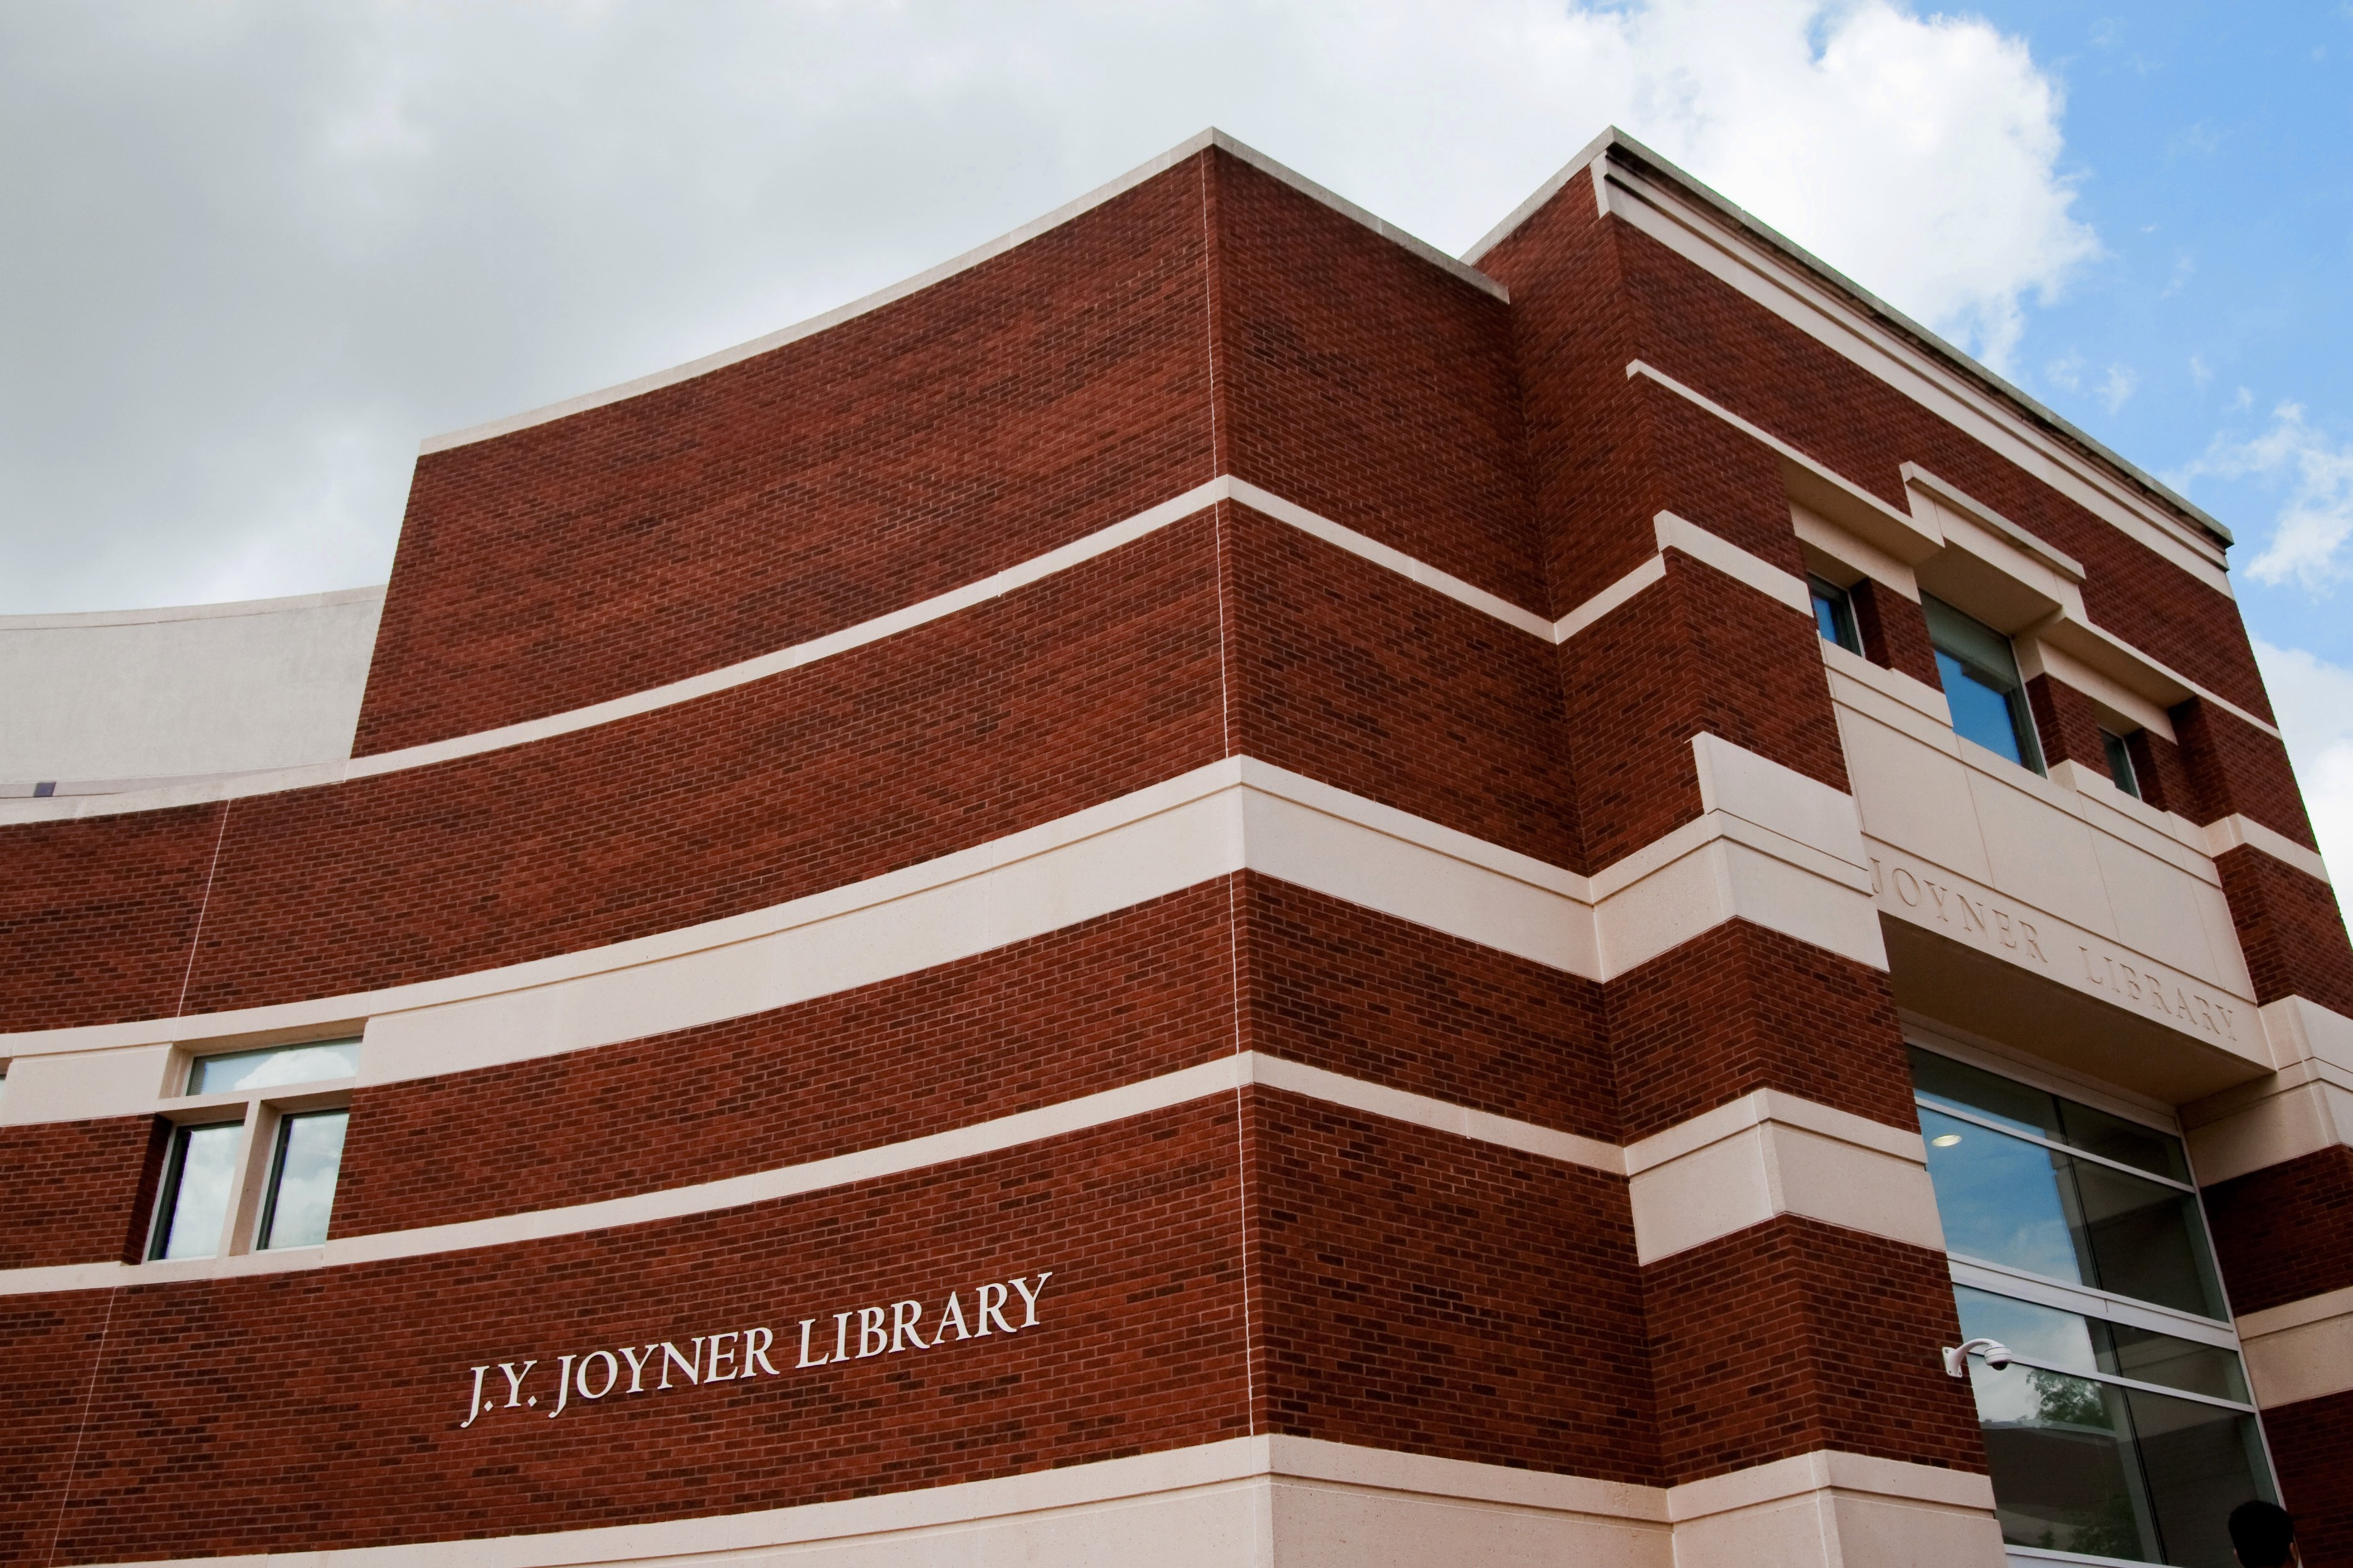 Photo of Joyner Library exterior